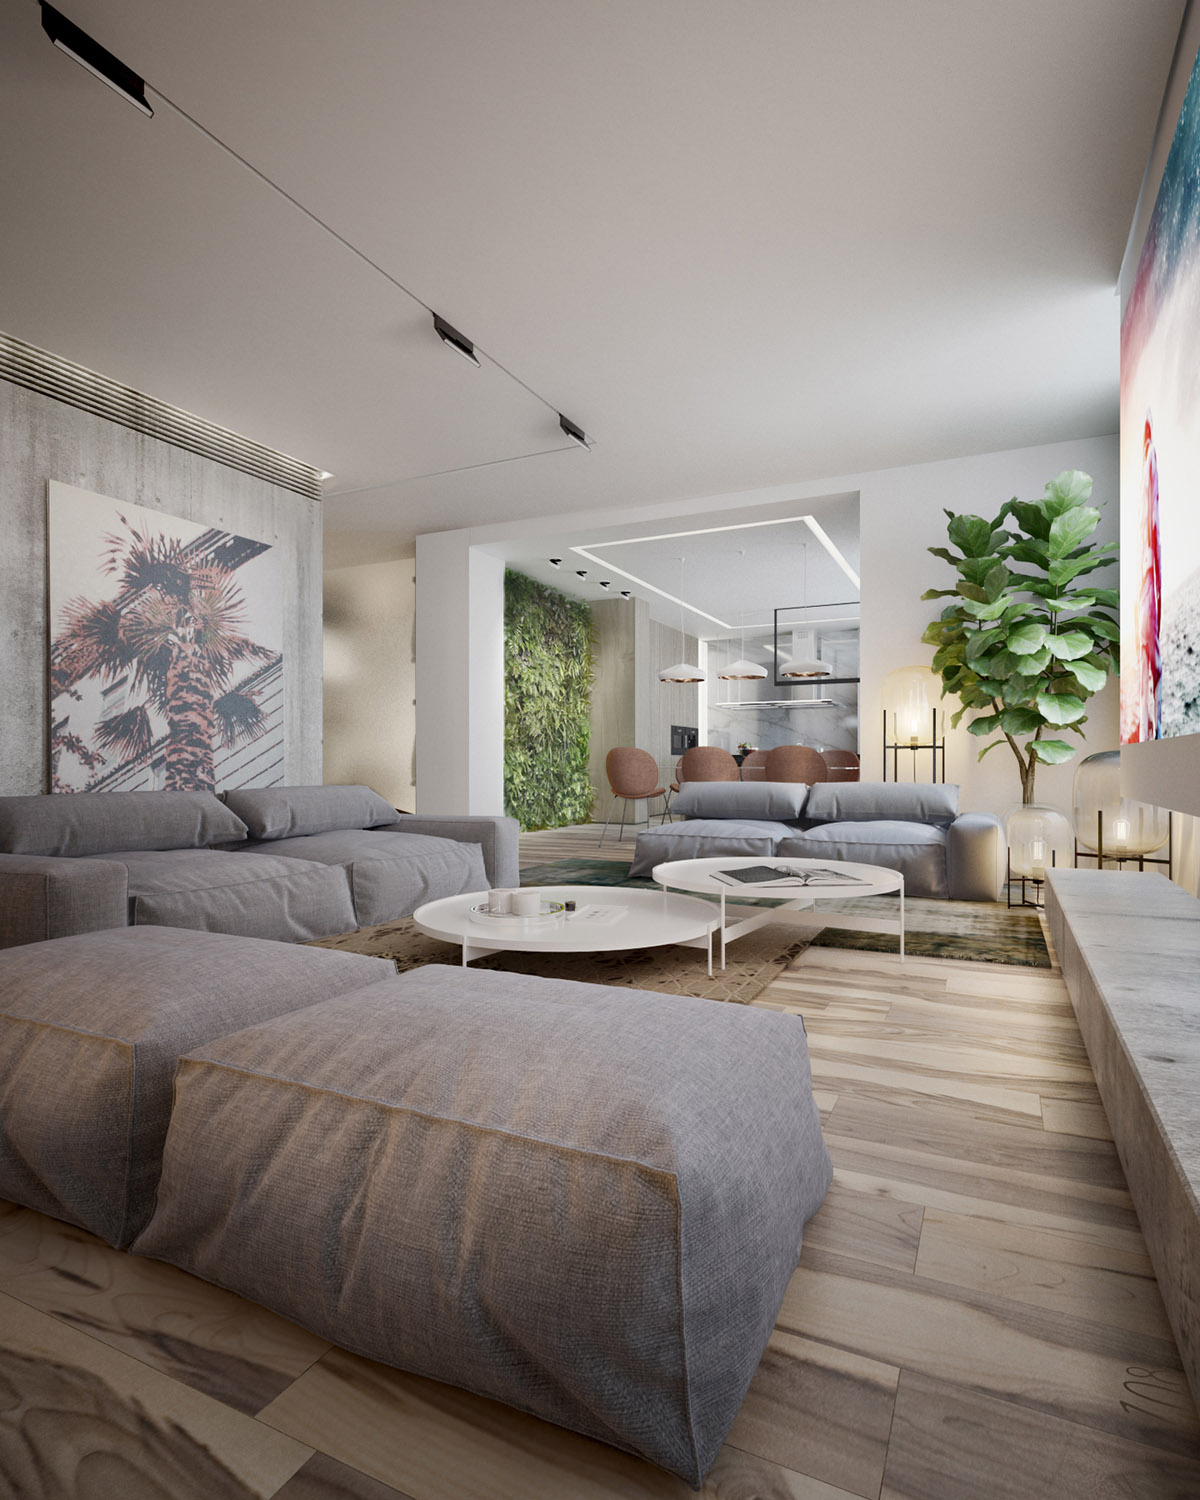 Gray Sectional Sofa - 4 interiors where wood and concrete meet